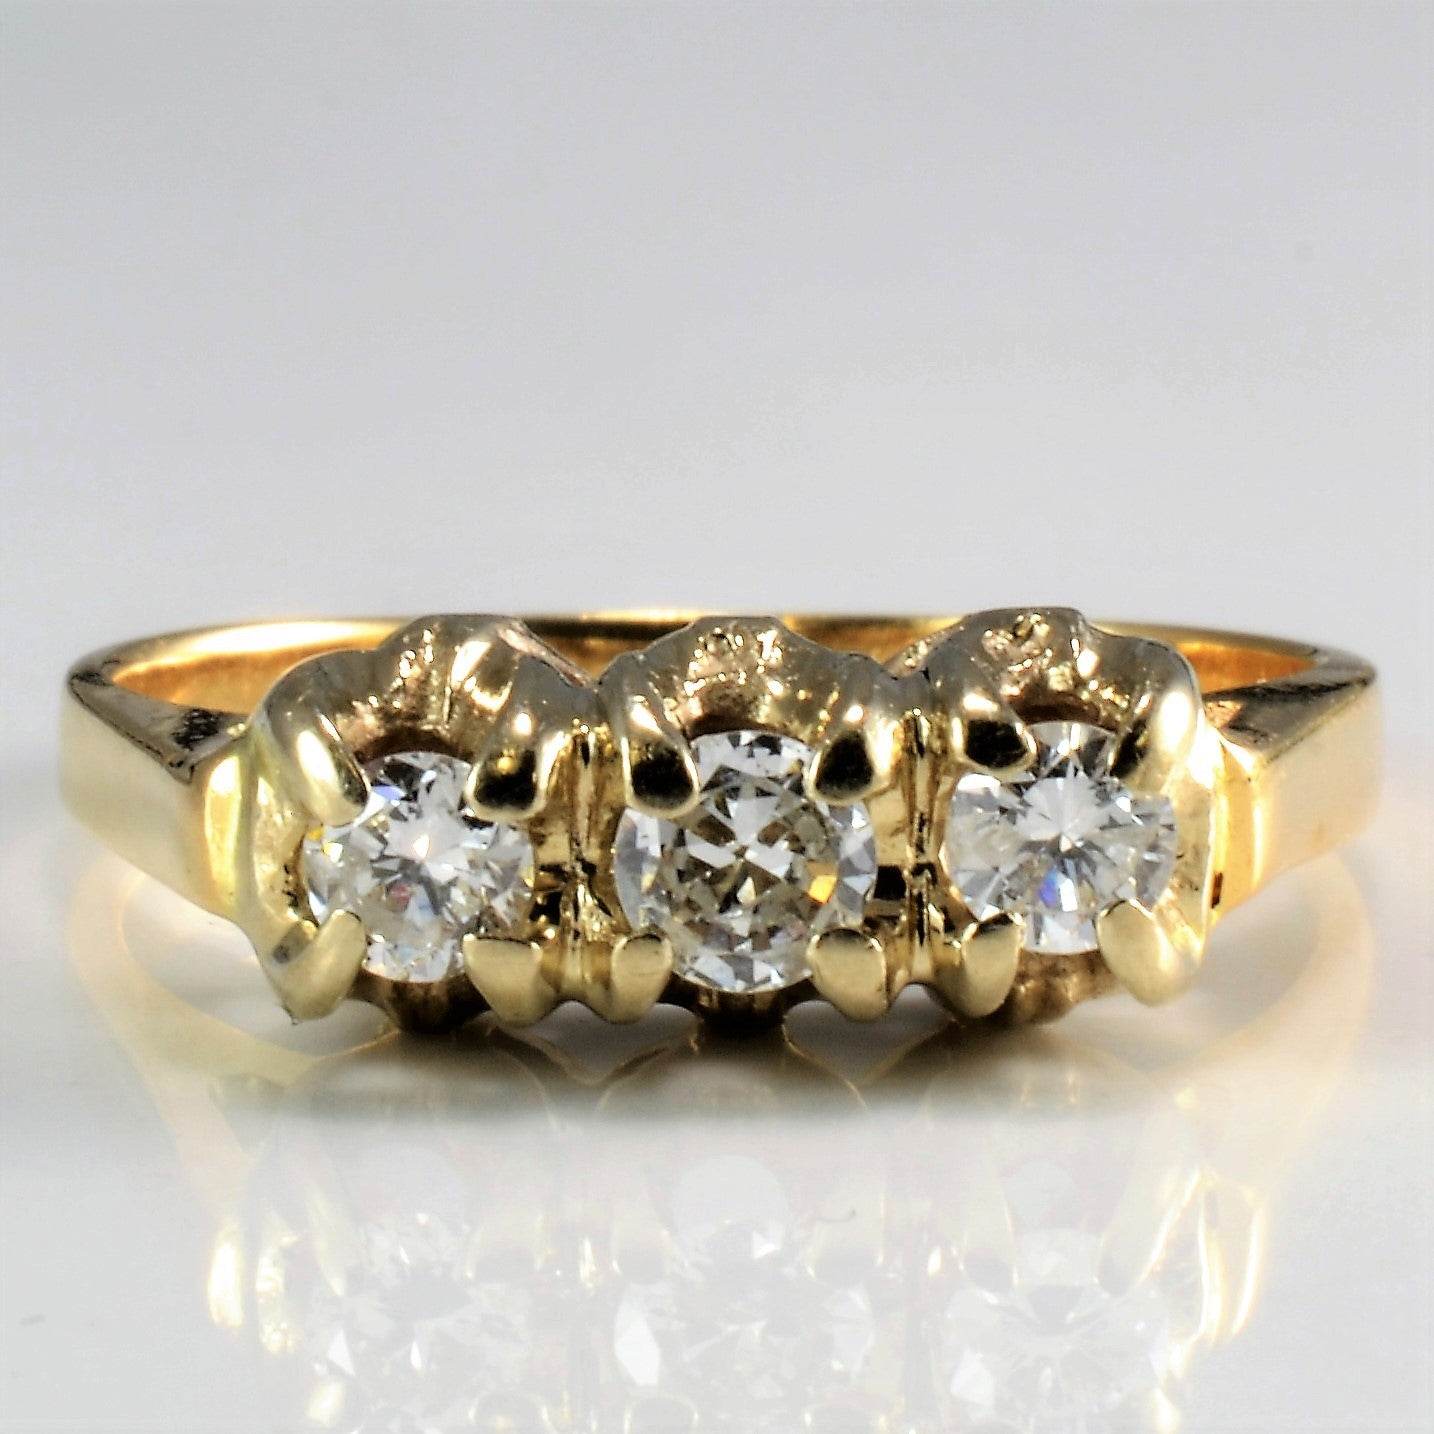 timeless band ring bridal yellow gold stone anniversary three sto wexford diamond